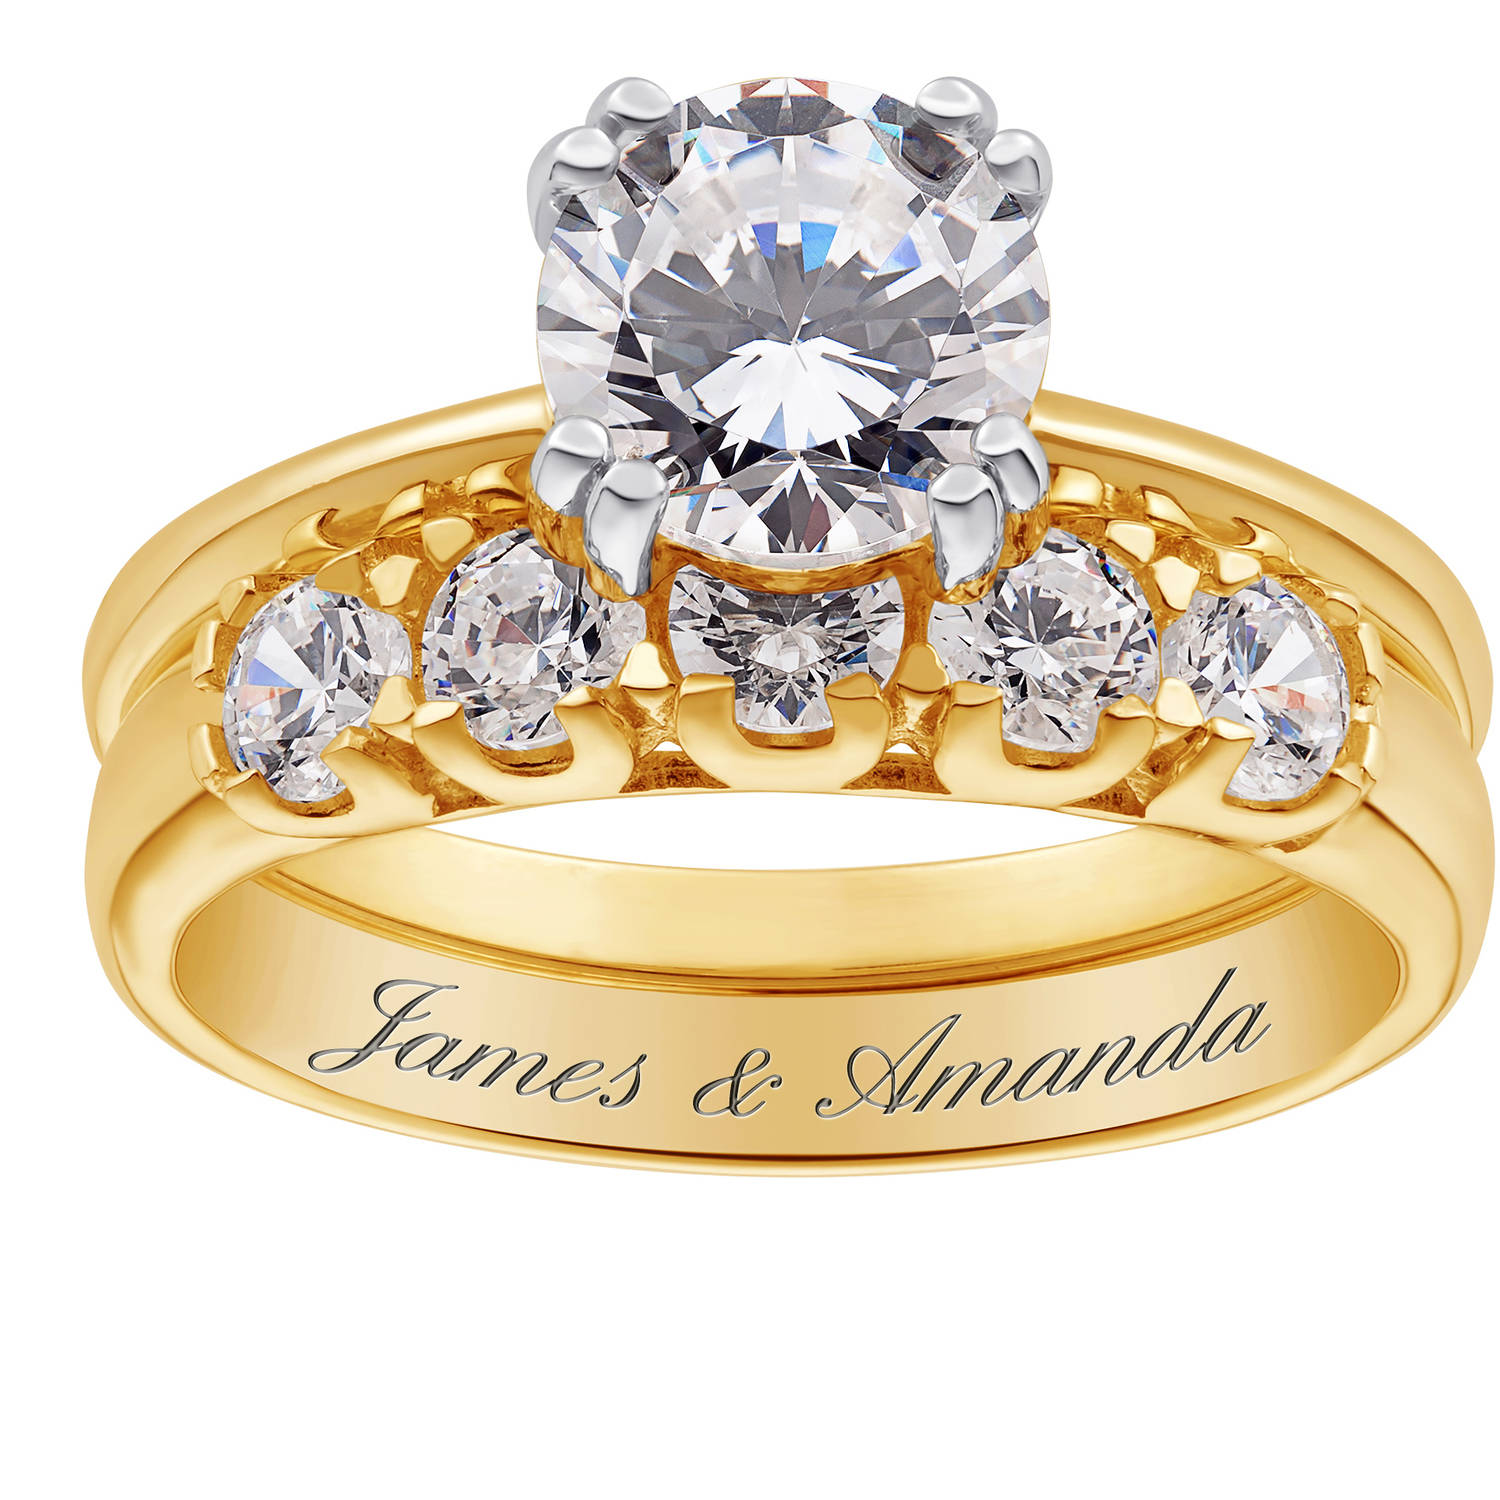 Personalized Gold over Sterling Silver 2-Piece CZ Engraved Wedding Ring Set